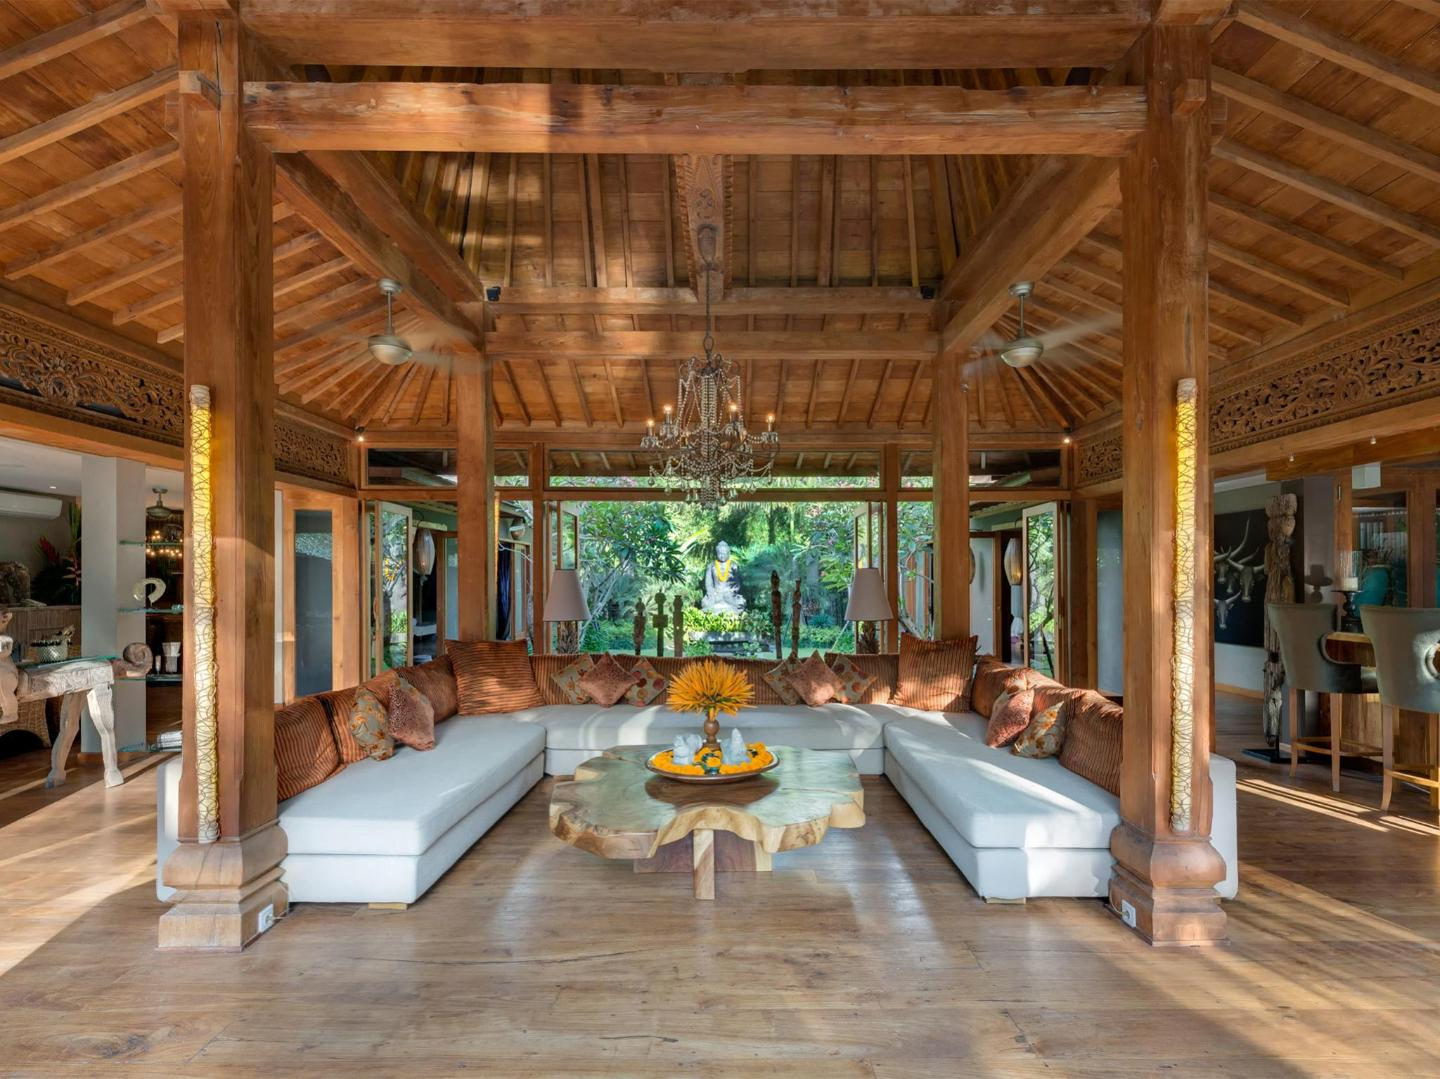 10 ways to go tropical for a relaxing and trendy home office.htm the 10 best villas in seminyak  indonesia booking com  the 10 best villas in seminyak